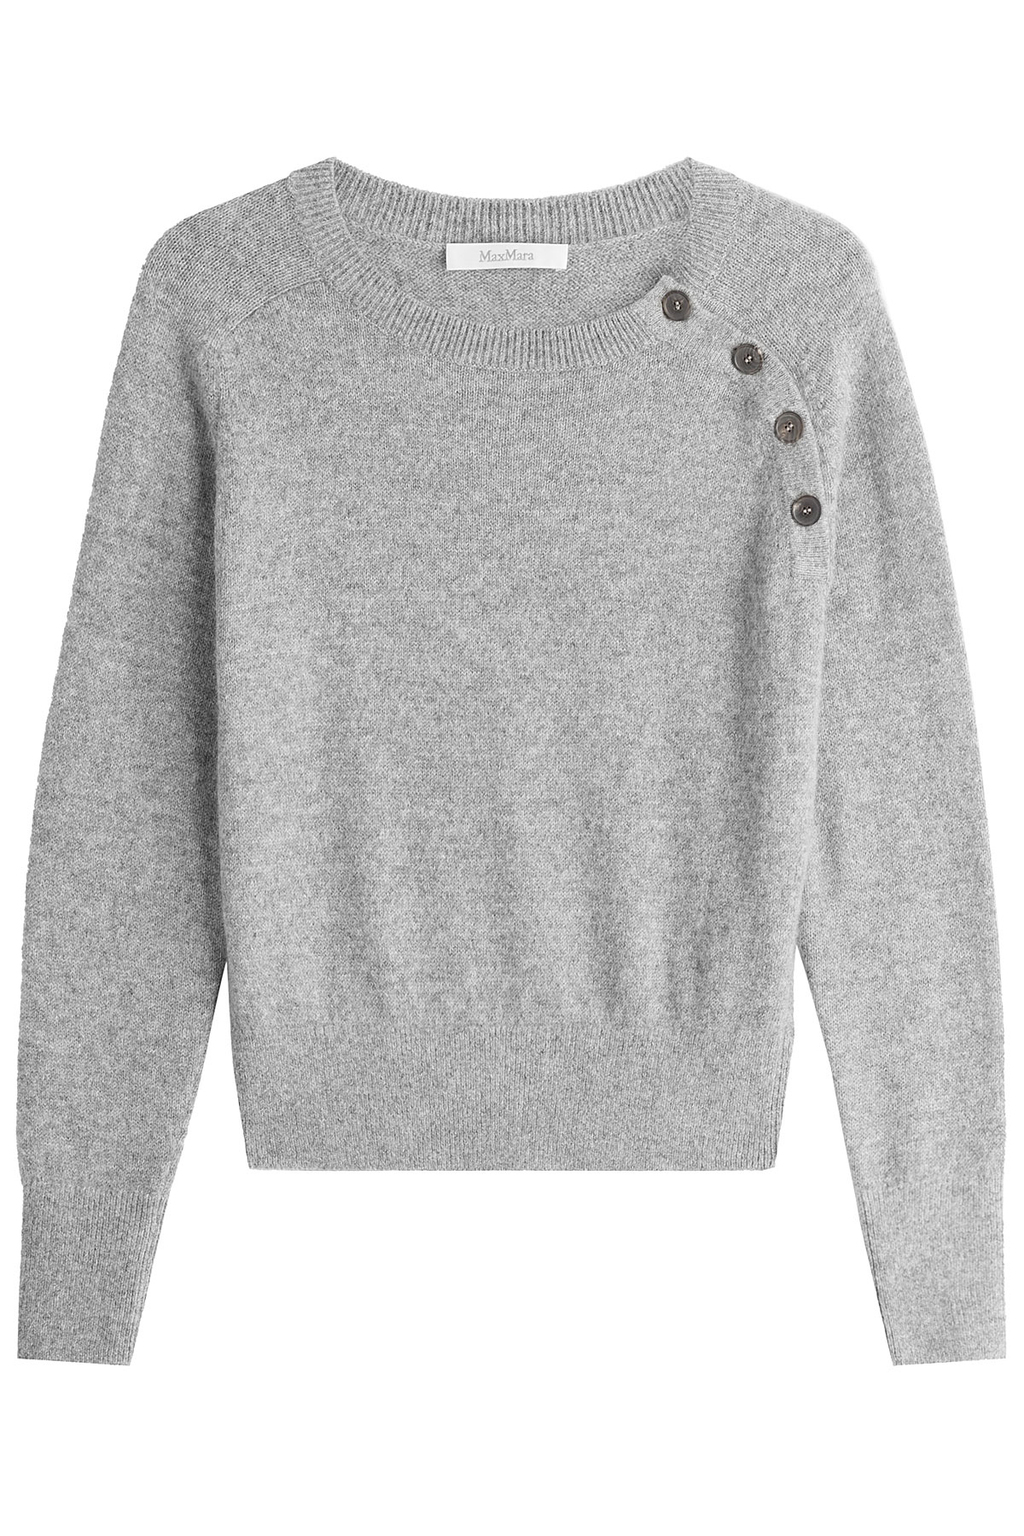 Alpaca Pullover Grey - pattern: plain; style: standard; predominant colour: light grey; occasions: casual; length: standard; fibres: wool - 100%; fit: slim fit; neckline: crew; sleeve length: long sleeve; sleeve style: standard; texture group: knits/crochet; pattern type: knitted - fine stitch; wardrobe: basic; season: a/w 2016